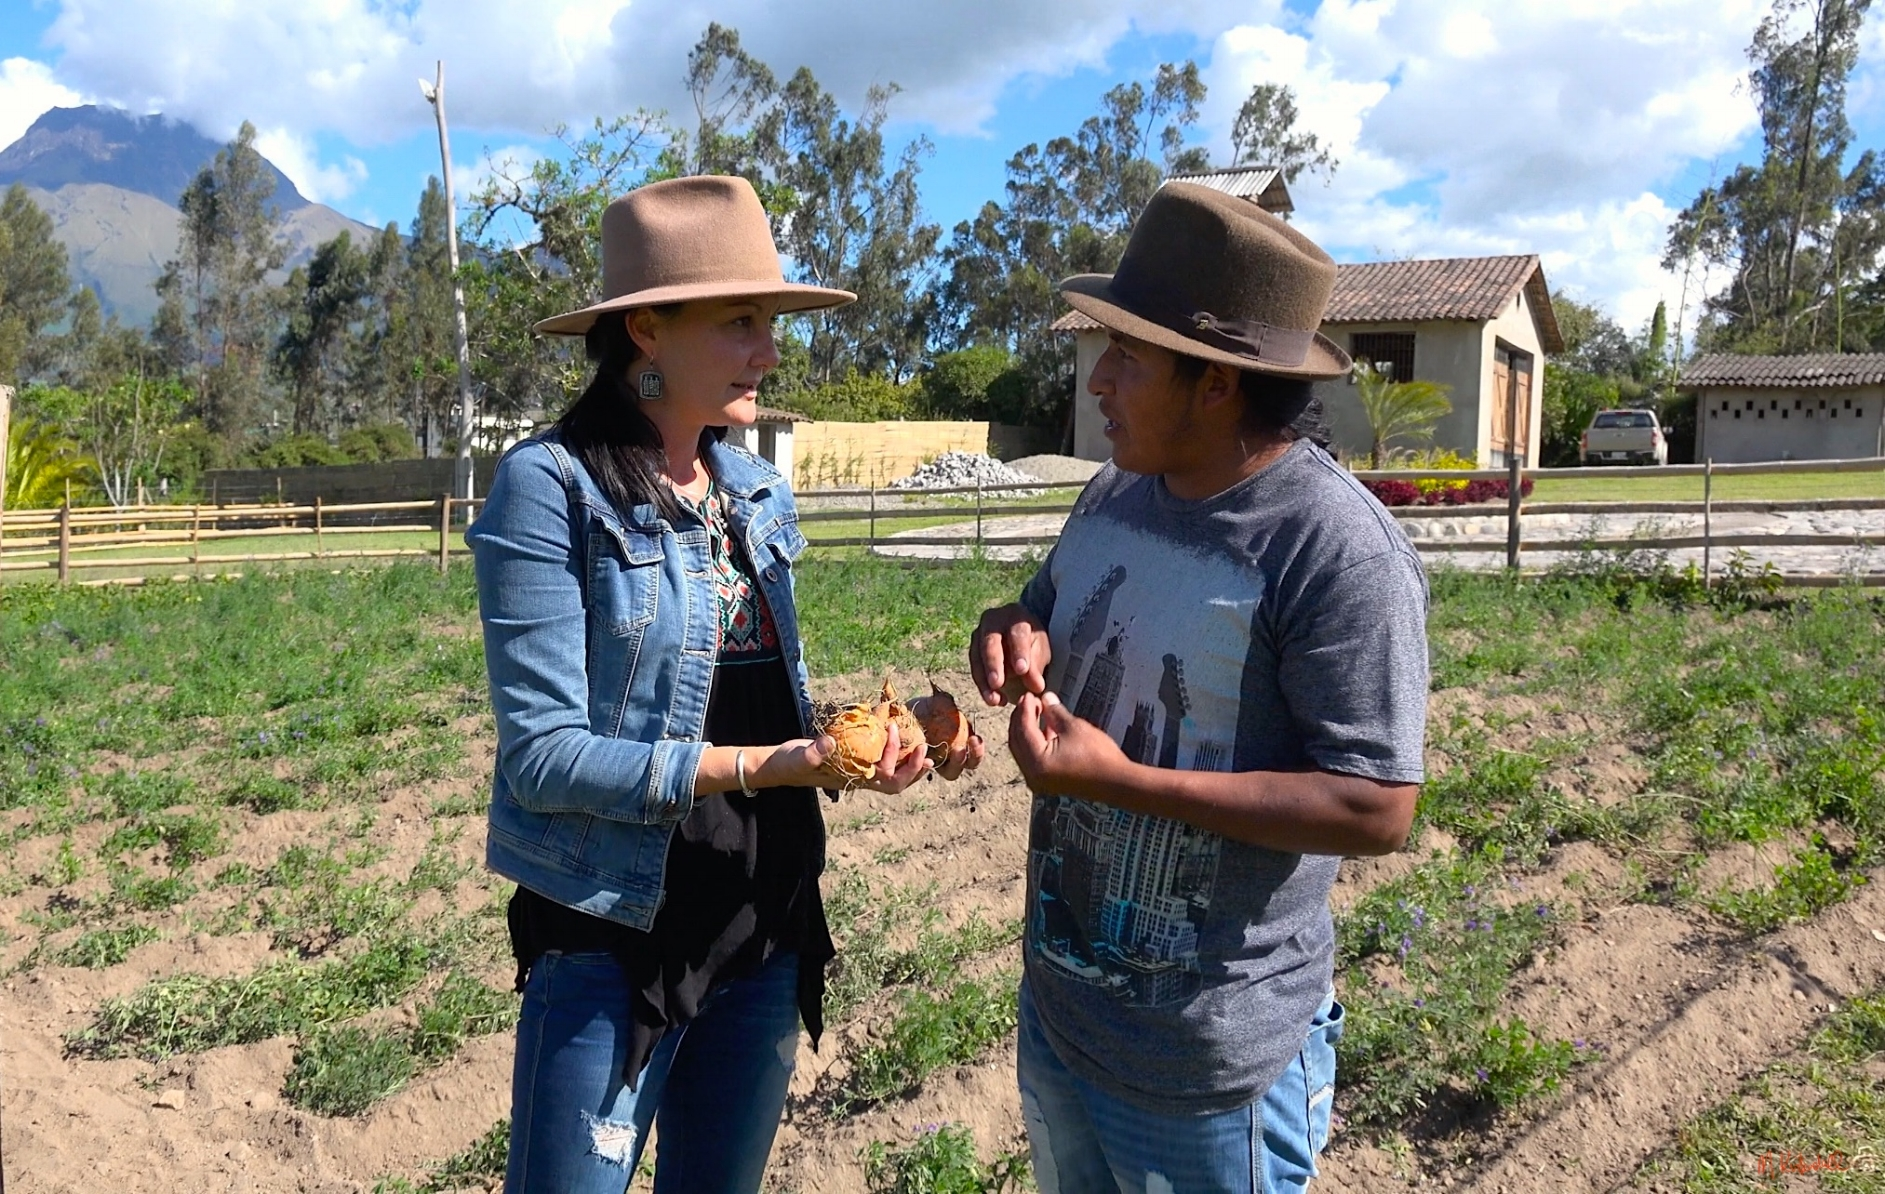 Deborah discusses with her foreman and local guide Alonzo how to deal with pests organically. Since inception of the finca, they have become dear friends.